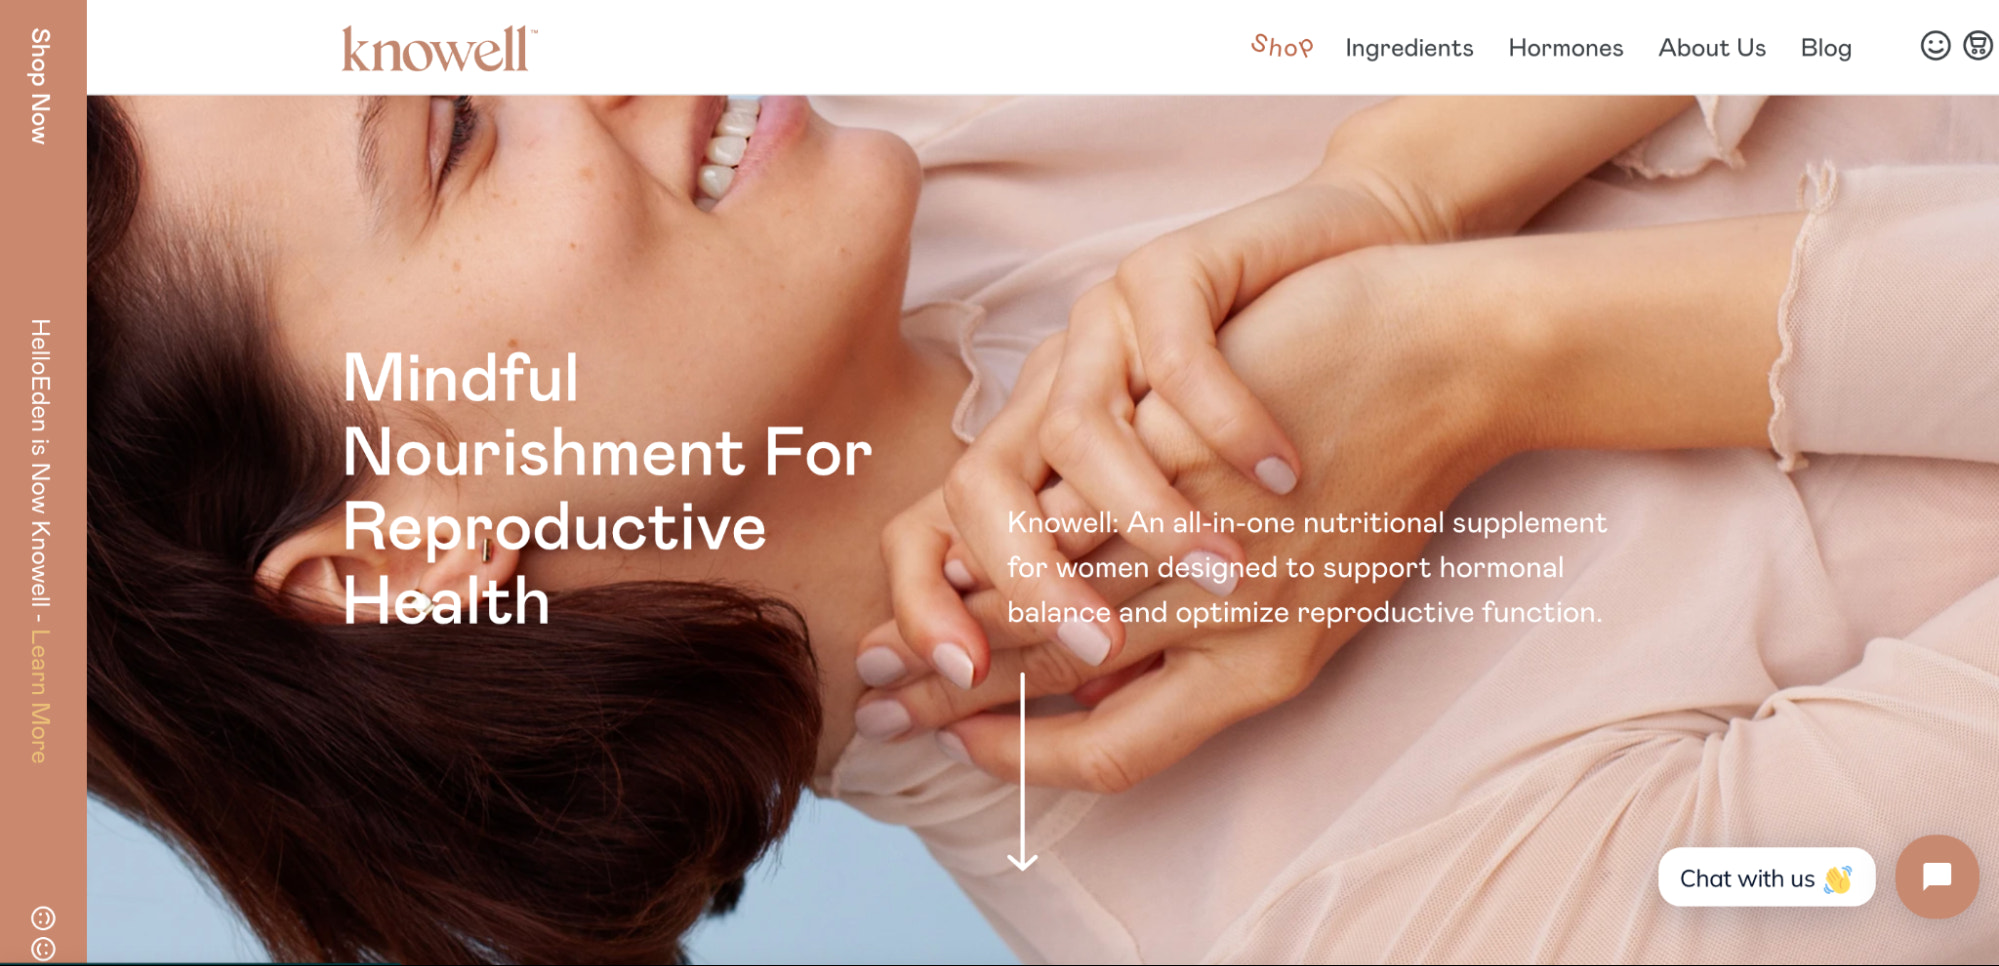 Knowell's web design highlights information about the company's nutritional supplements